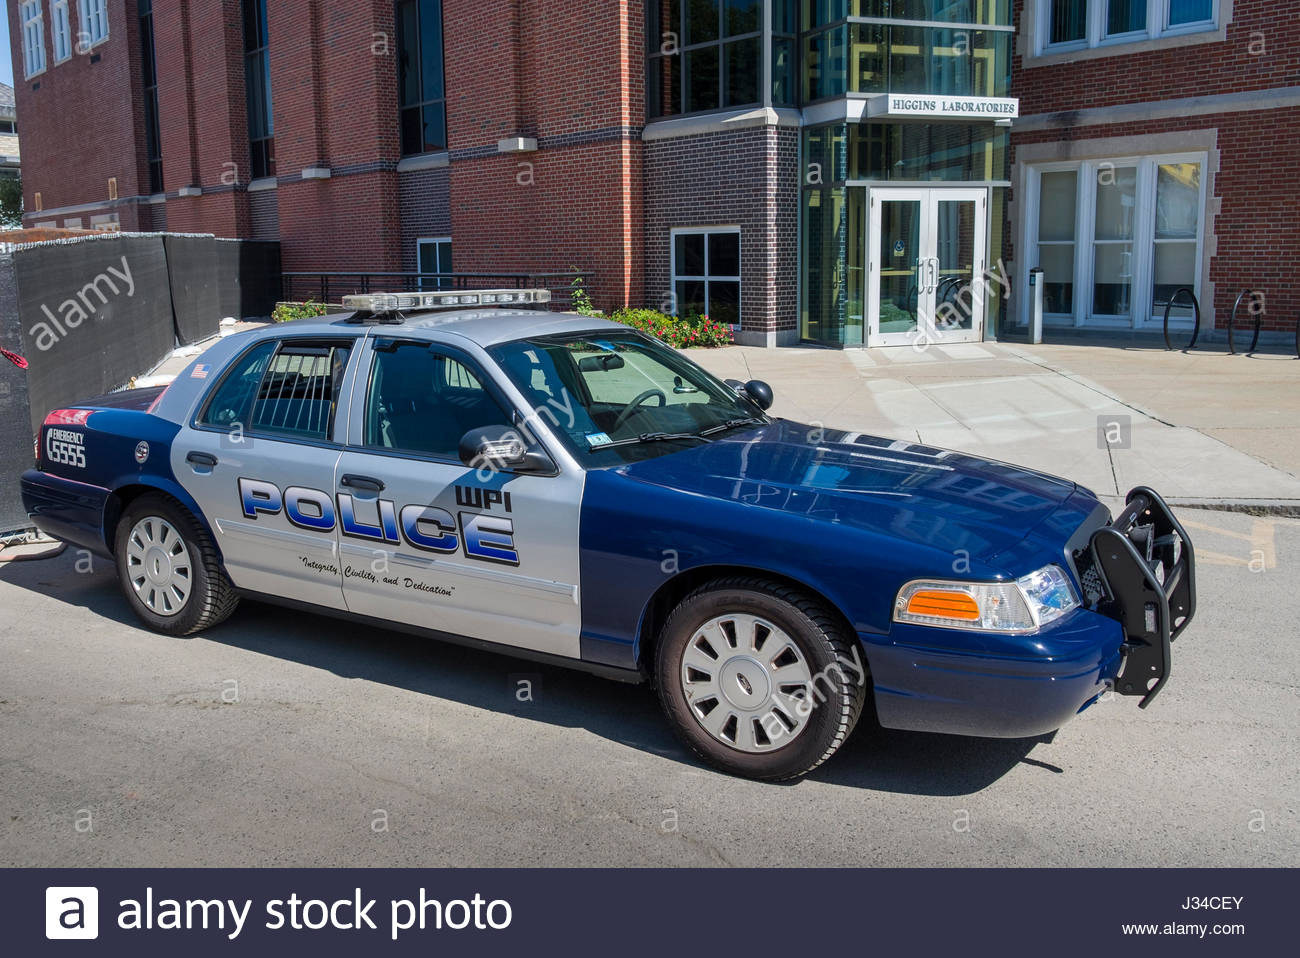 Ford wpi police sedan on the campus of worcester polytechnic institute worcester worcester county